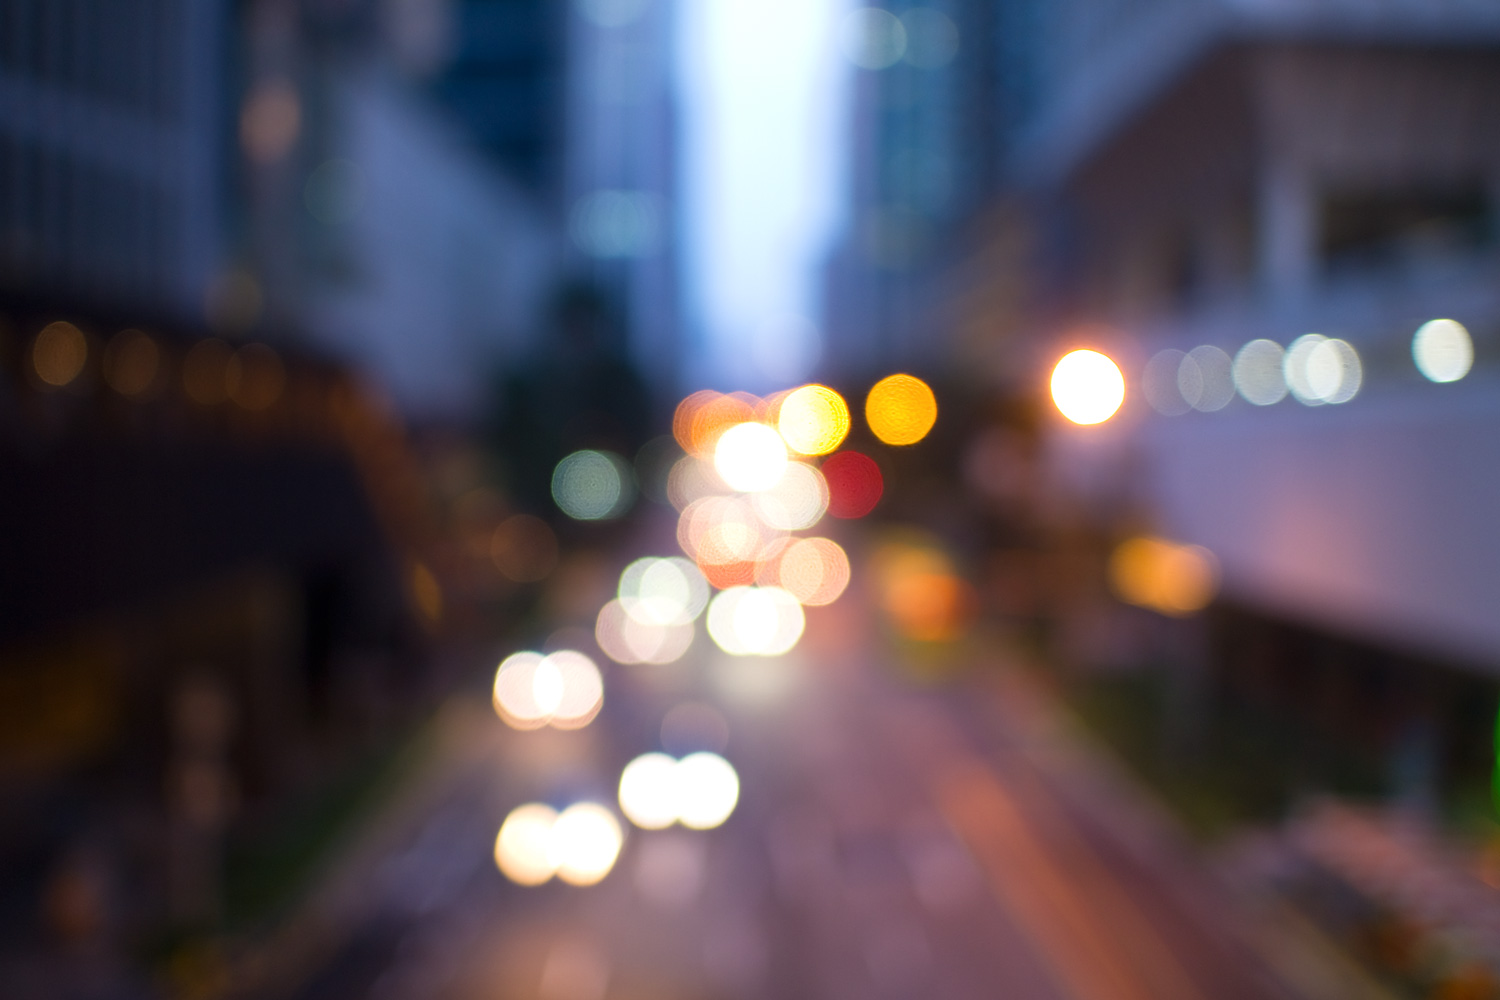 Tips For Shooting Out Of Focus Cityscape Bokeh Images At